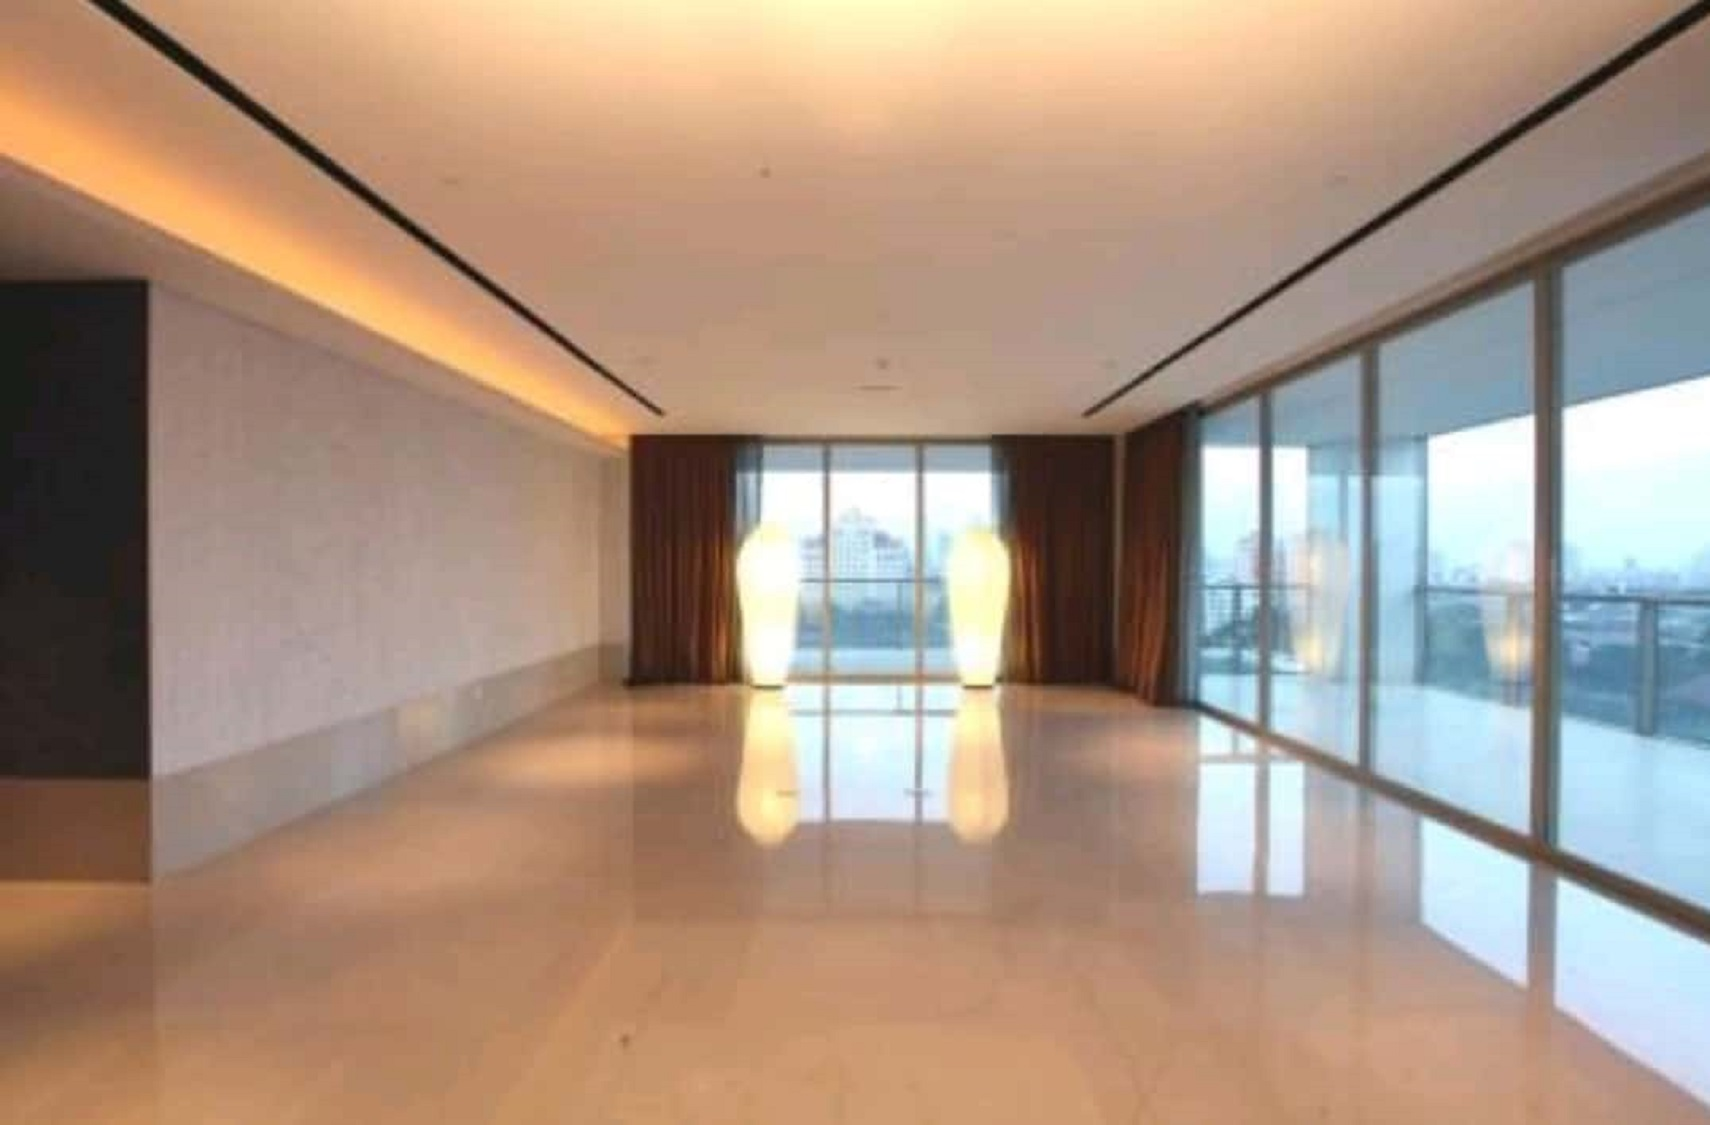 Apartemen di Dharmawangsa Residence, Middle Floor, City View, Well Maintained